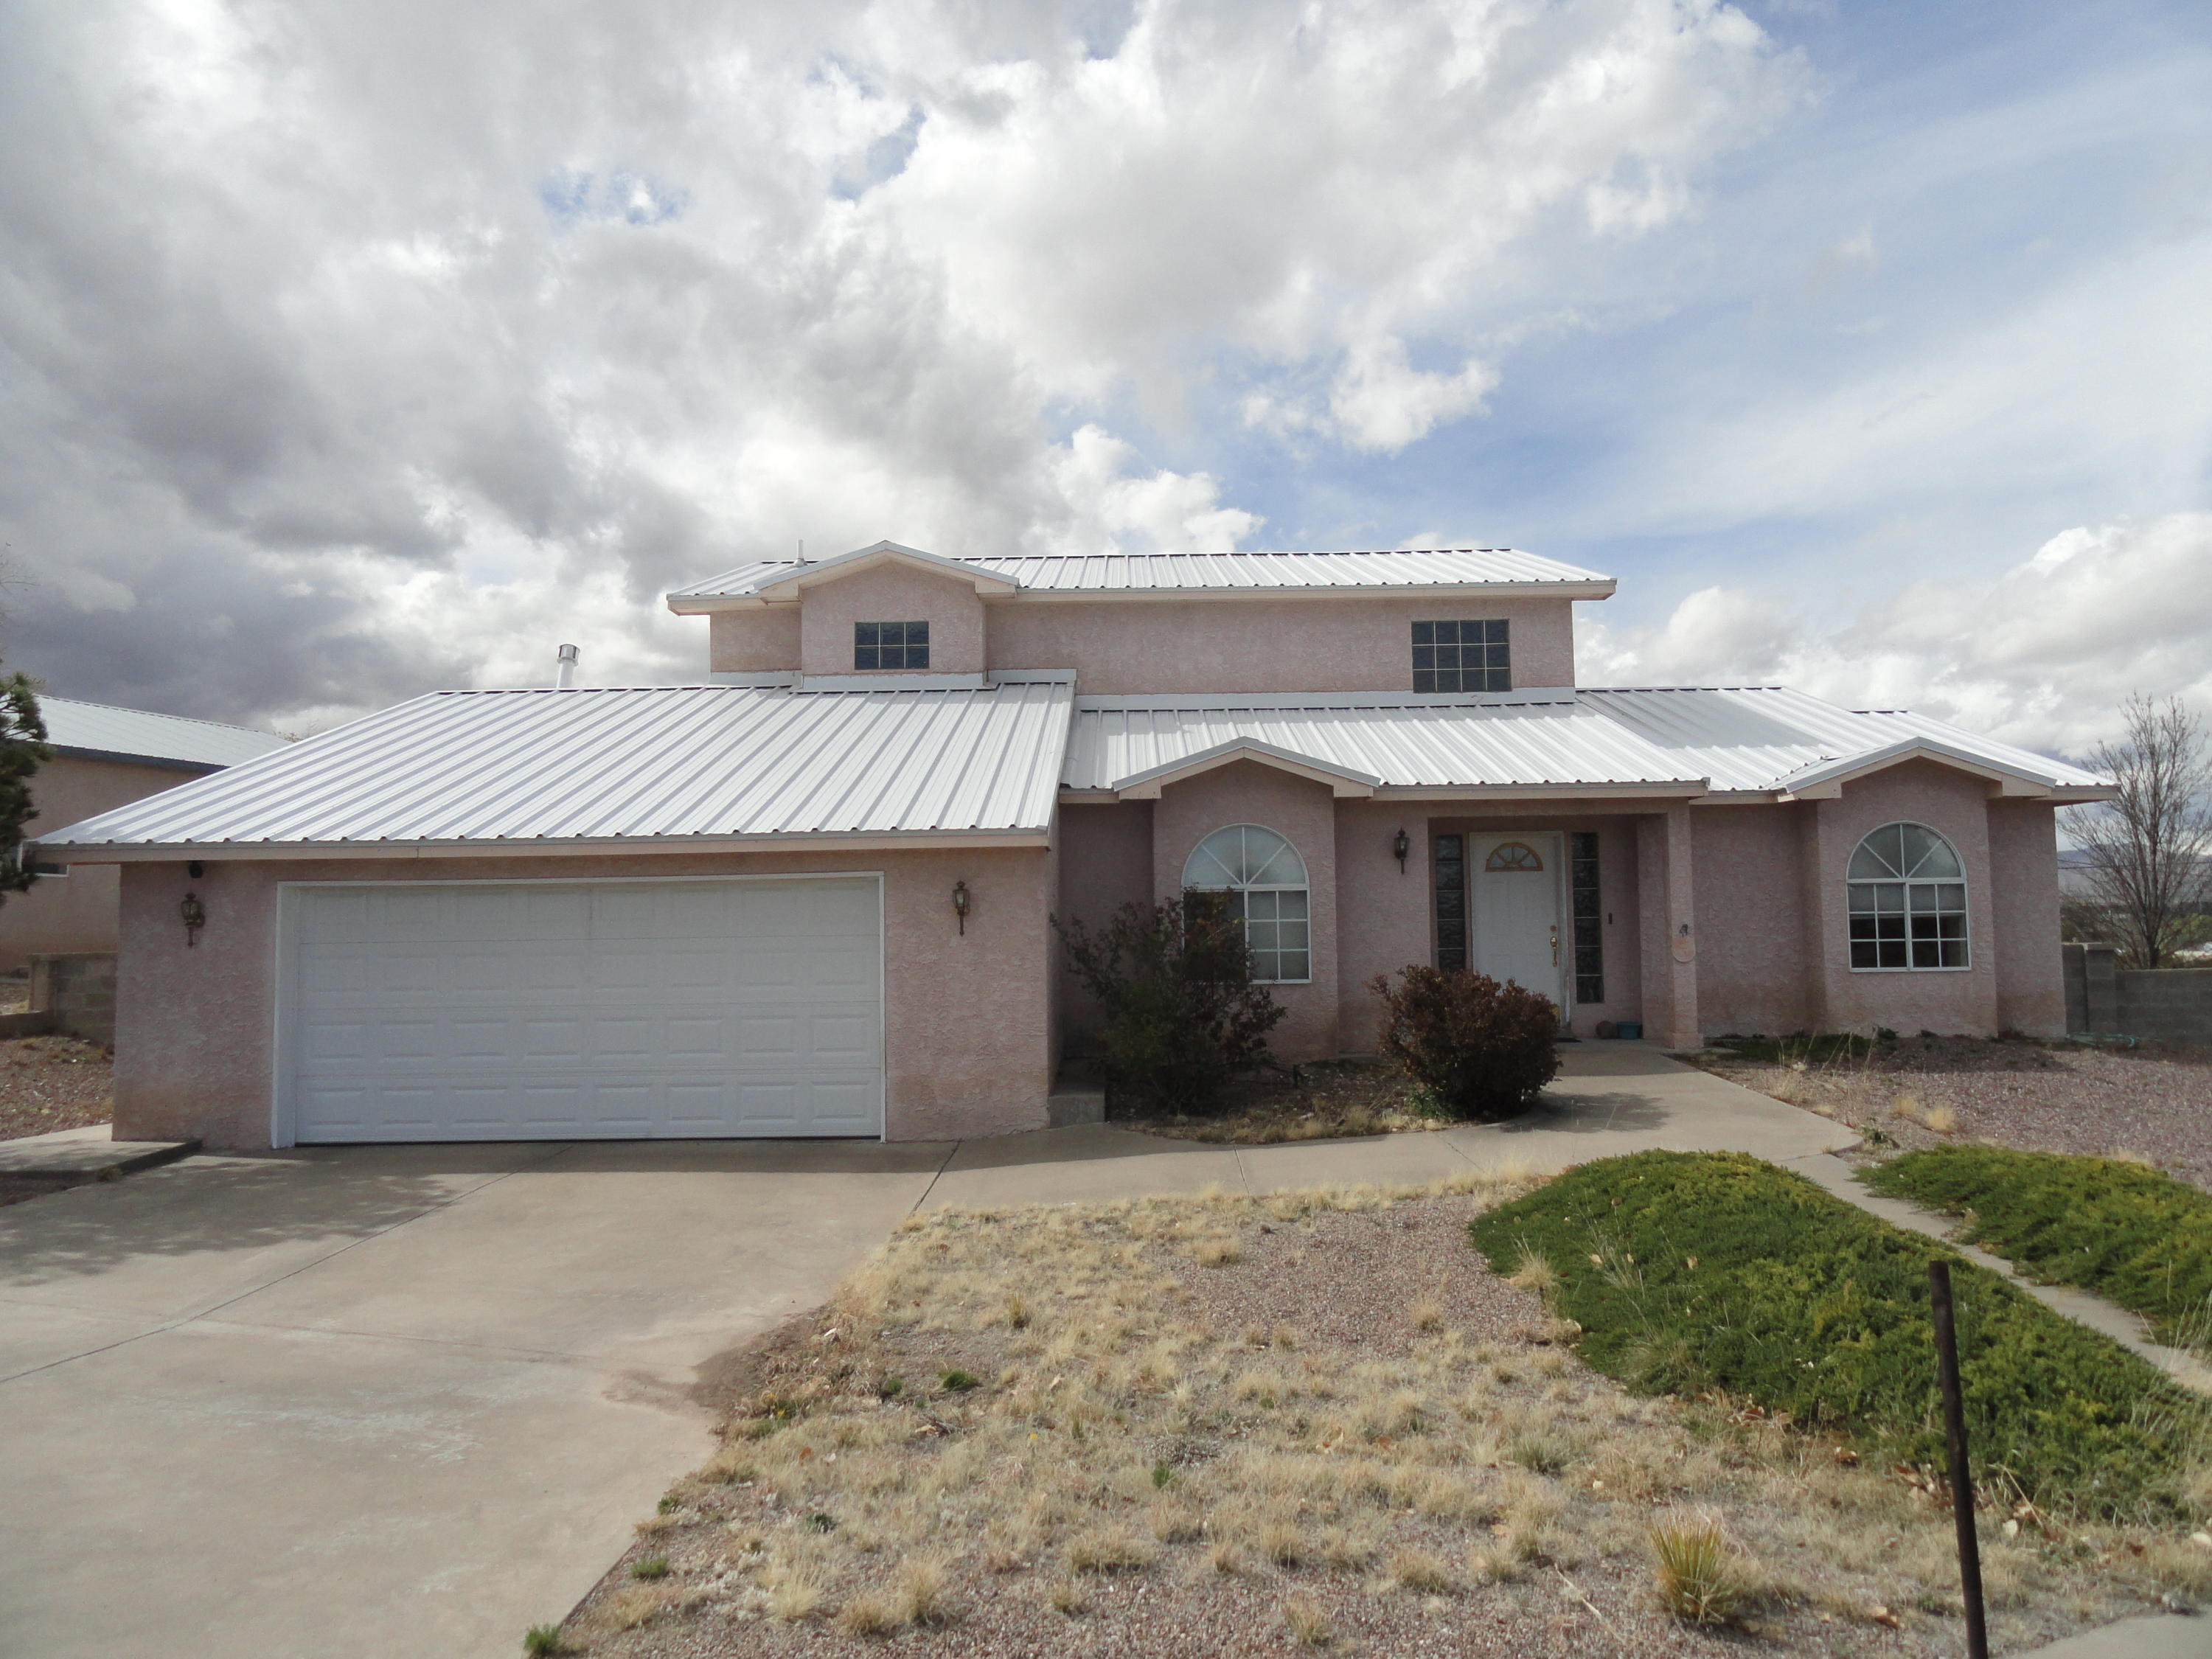 Beautiful Mission style home with large finished shop. Home features 2 spacious  bedrooms on ground level with lovely window seats. Grand master suite on upper level. Master features sitting area, newer slider to patio, Tongue and groove ceilings, Walk in closet, jetted garden tub, and separate shower. Kitchen has loads of cabinets, counters, and newer stainless fridge. Living area with cozy gas log fireplace. There is a 1/2 bath conveniently located by large laundry room. Shop is completely finished with 1/2 bath, heating, cooling, and will accommodate a RV.